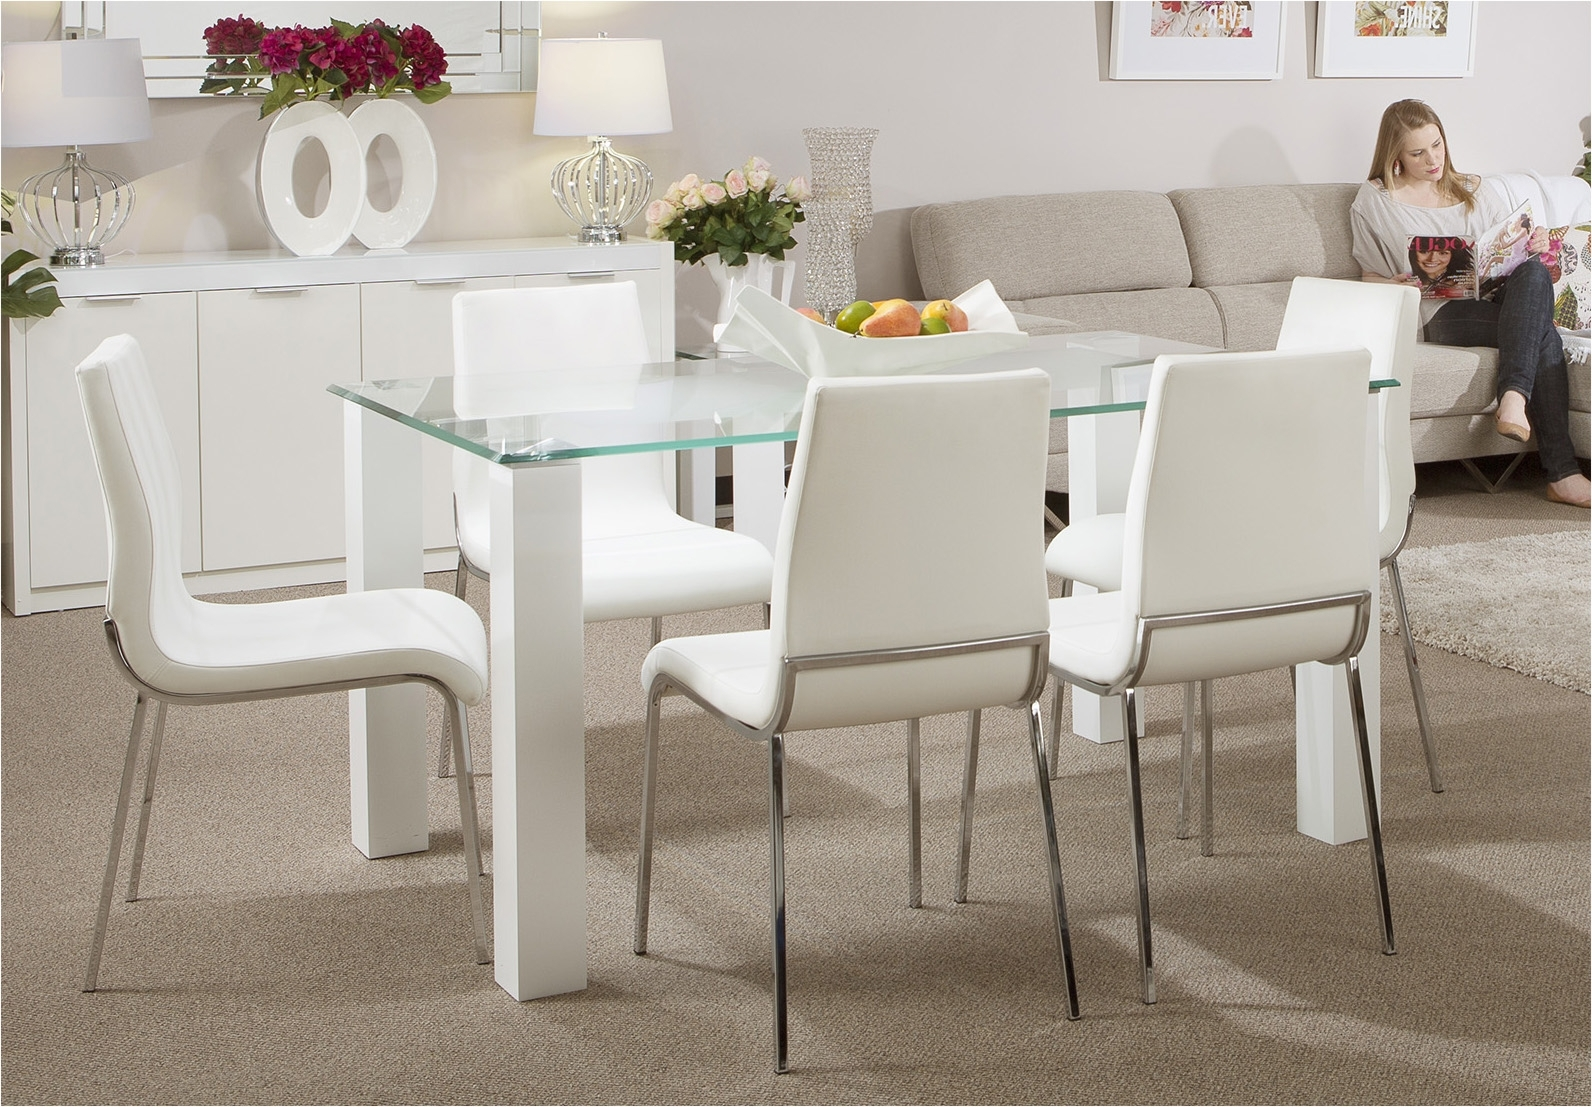 Modern Dining Suites Pertaining To Most Up To Date Dining: Modern Dining Suites (Gallery 2 of 25)